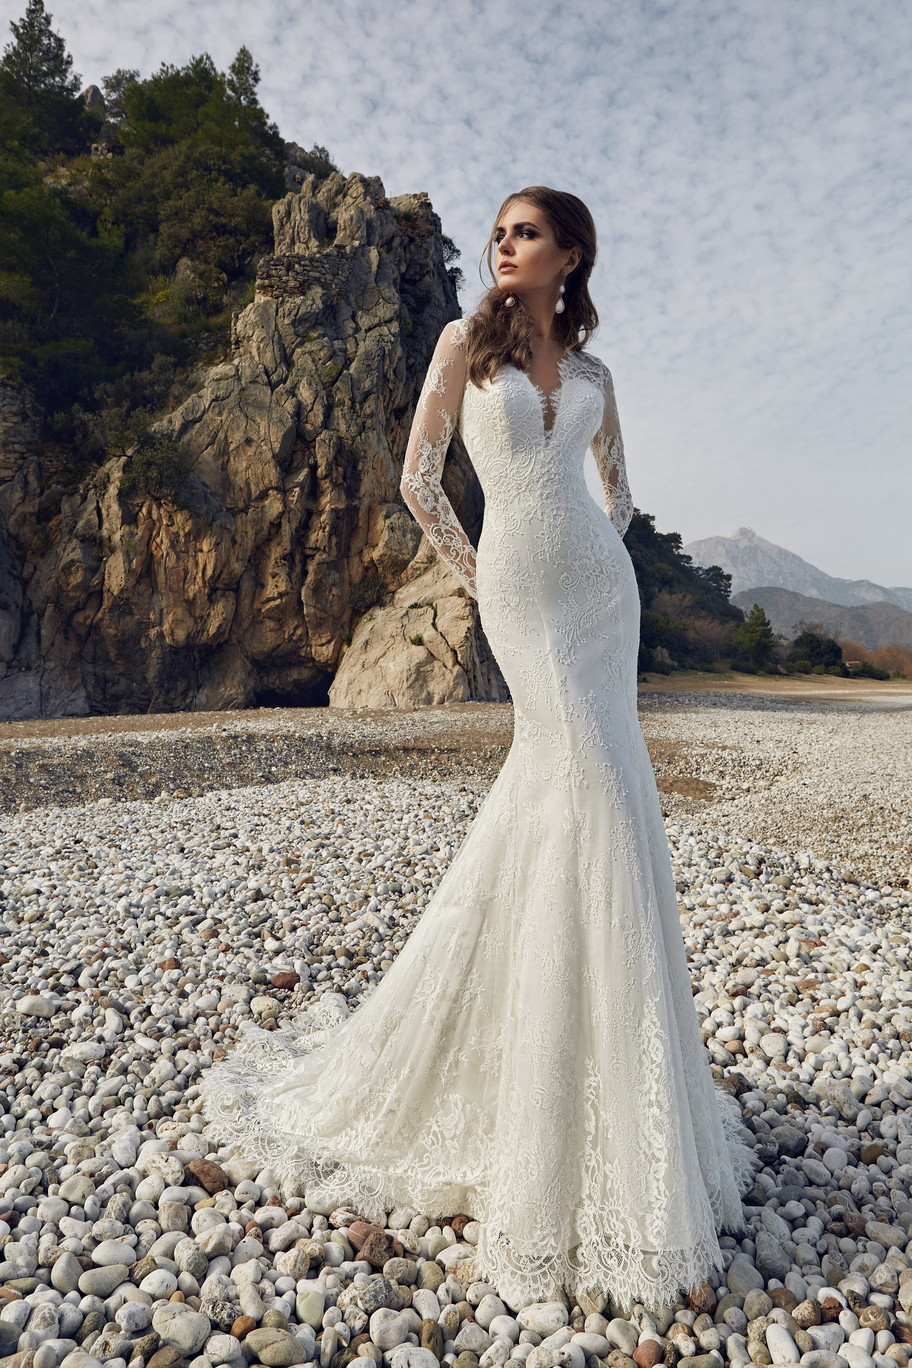 Modest Slim Waist Mermaid Wedding Dresses Full Lace Long Sleeves Open Backless Bridal Gowns Customized Robe De Mariee Plus Size